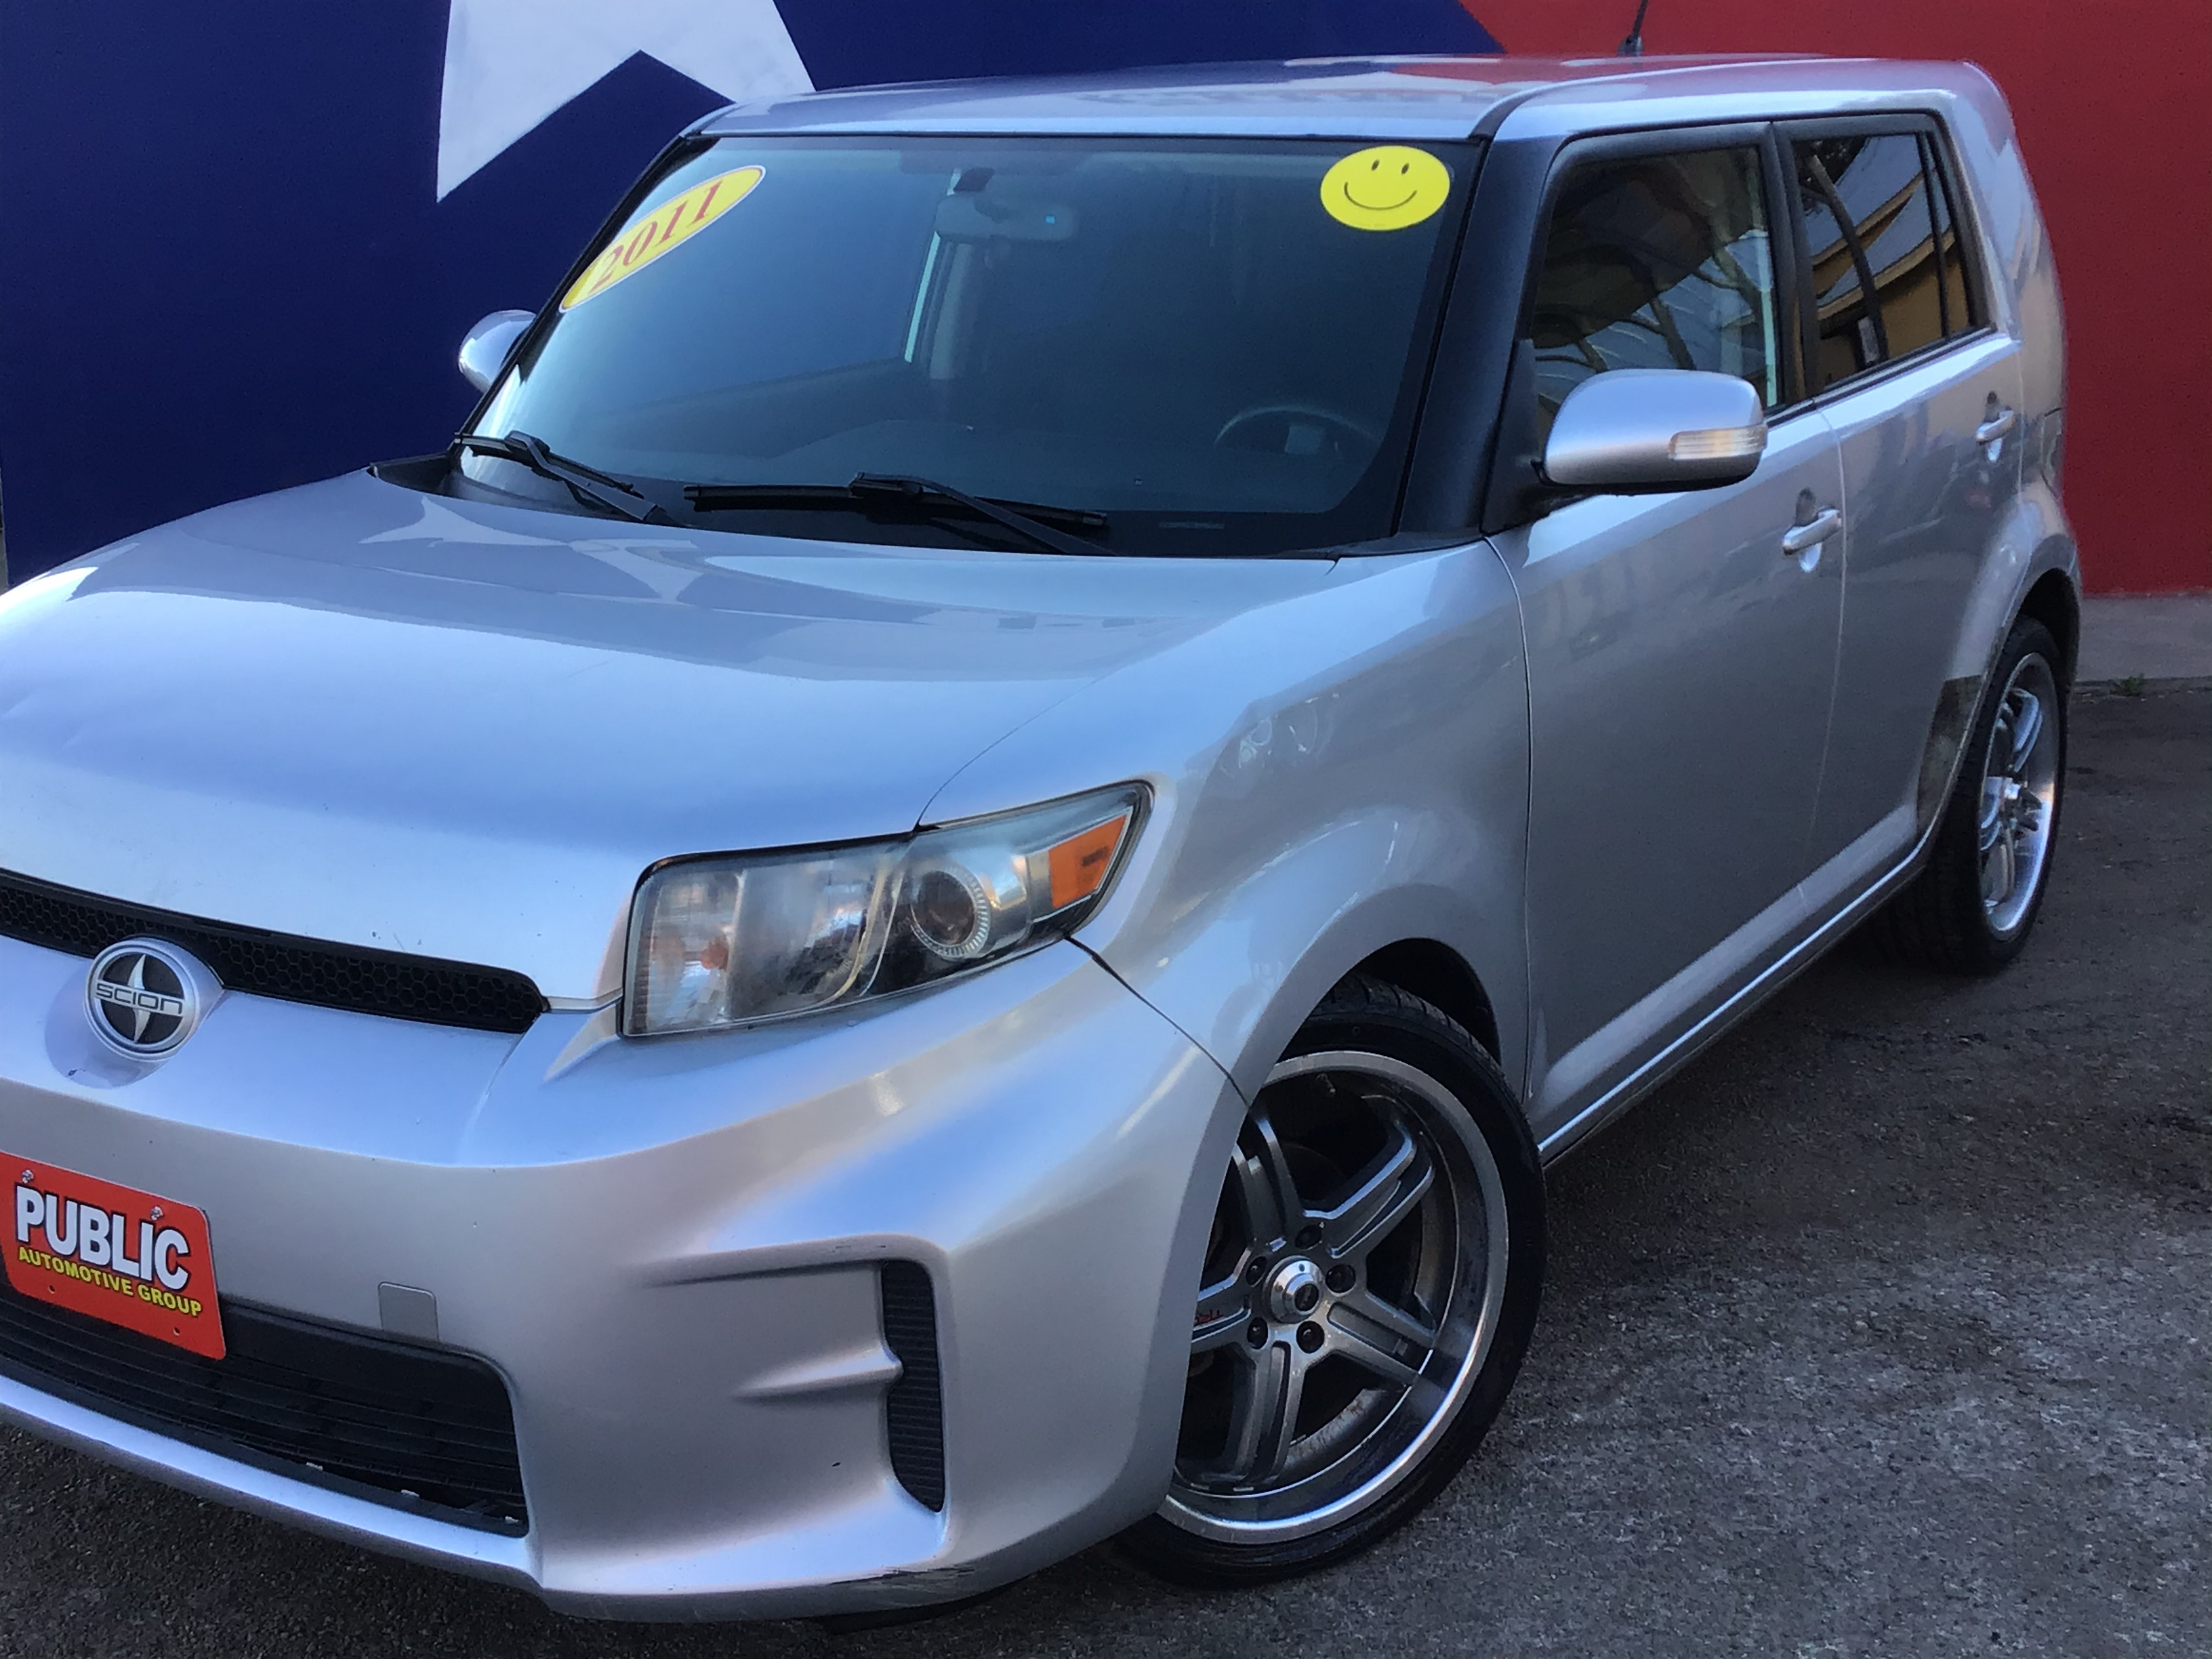 used vehicle - 4 DOOR WAGON SCION XB 2011